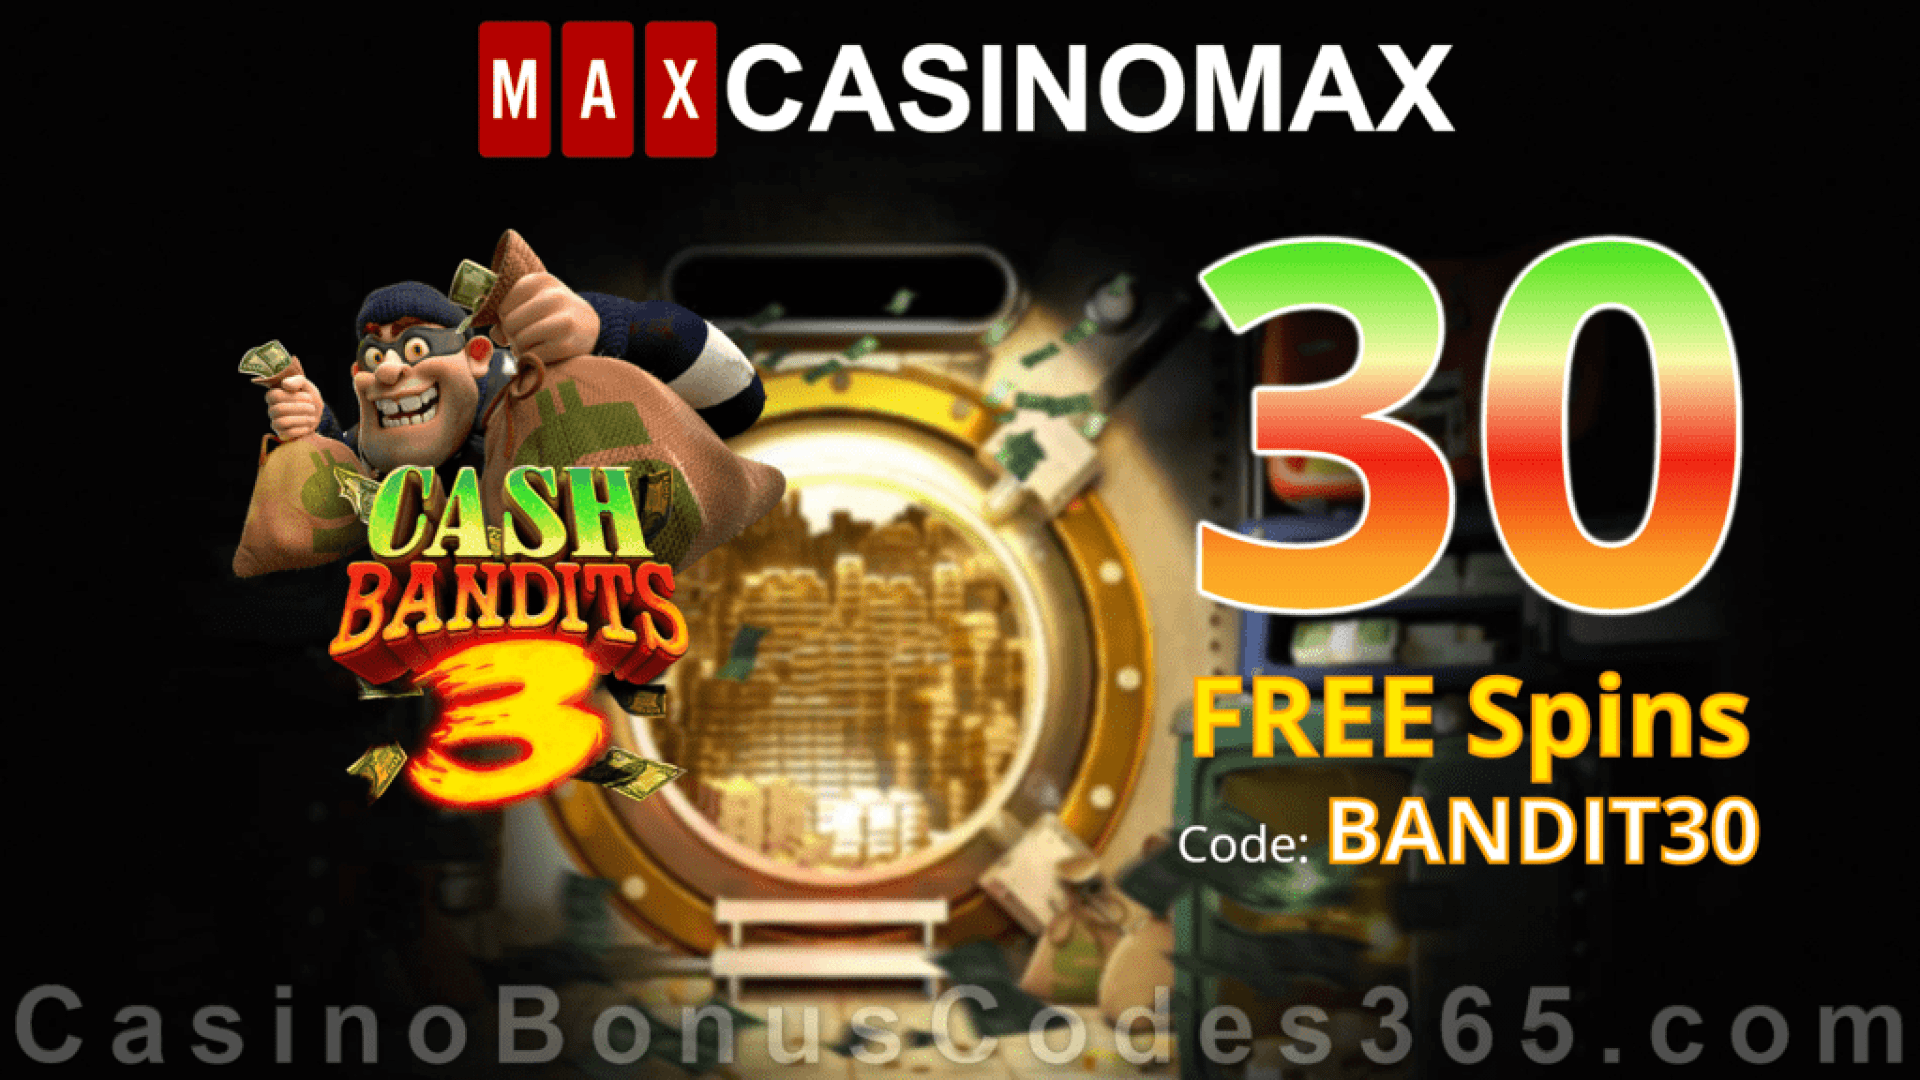 Casino Max New RTG Game Cash Bandits 3 30 FREE Spins Special Deal